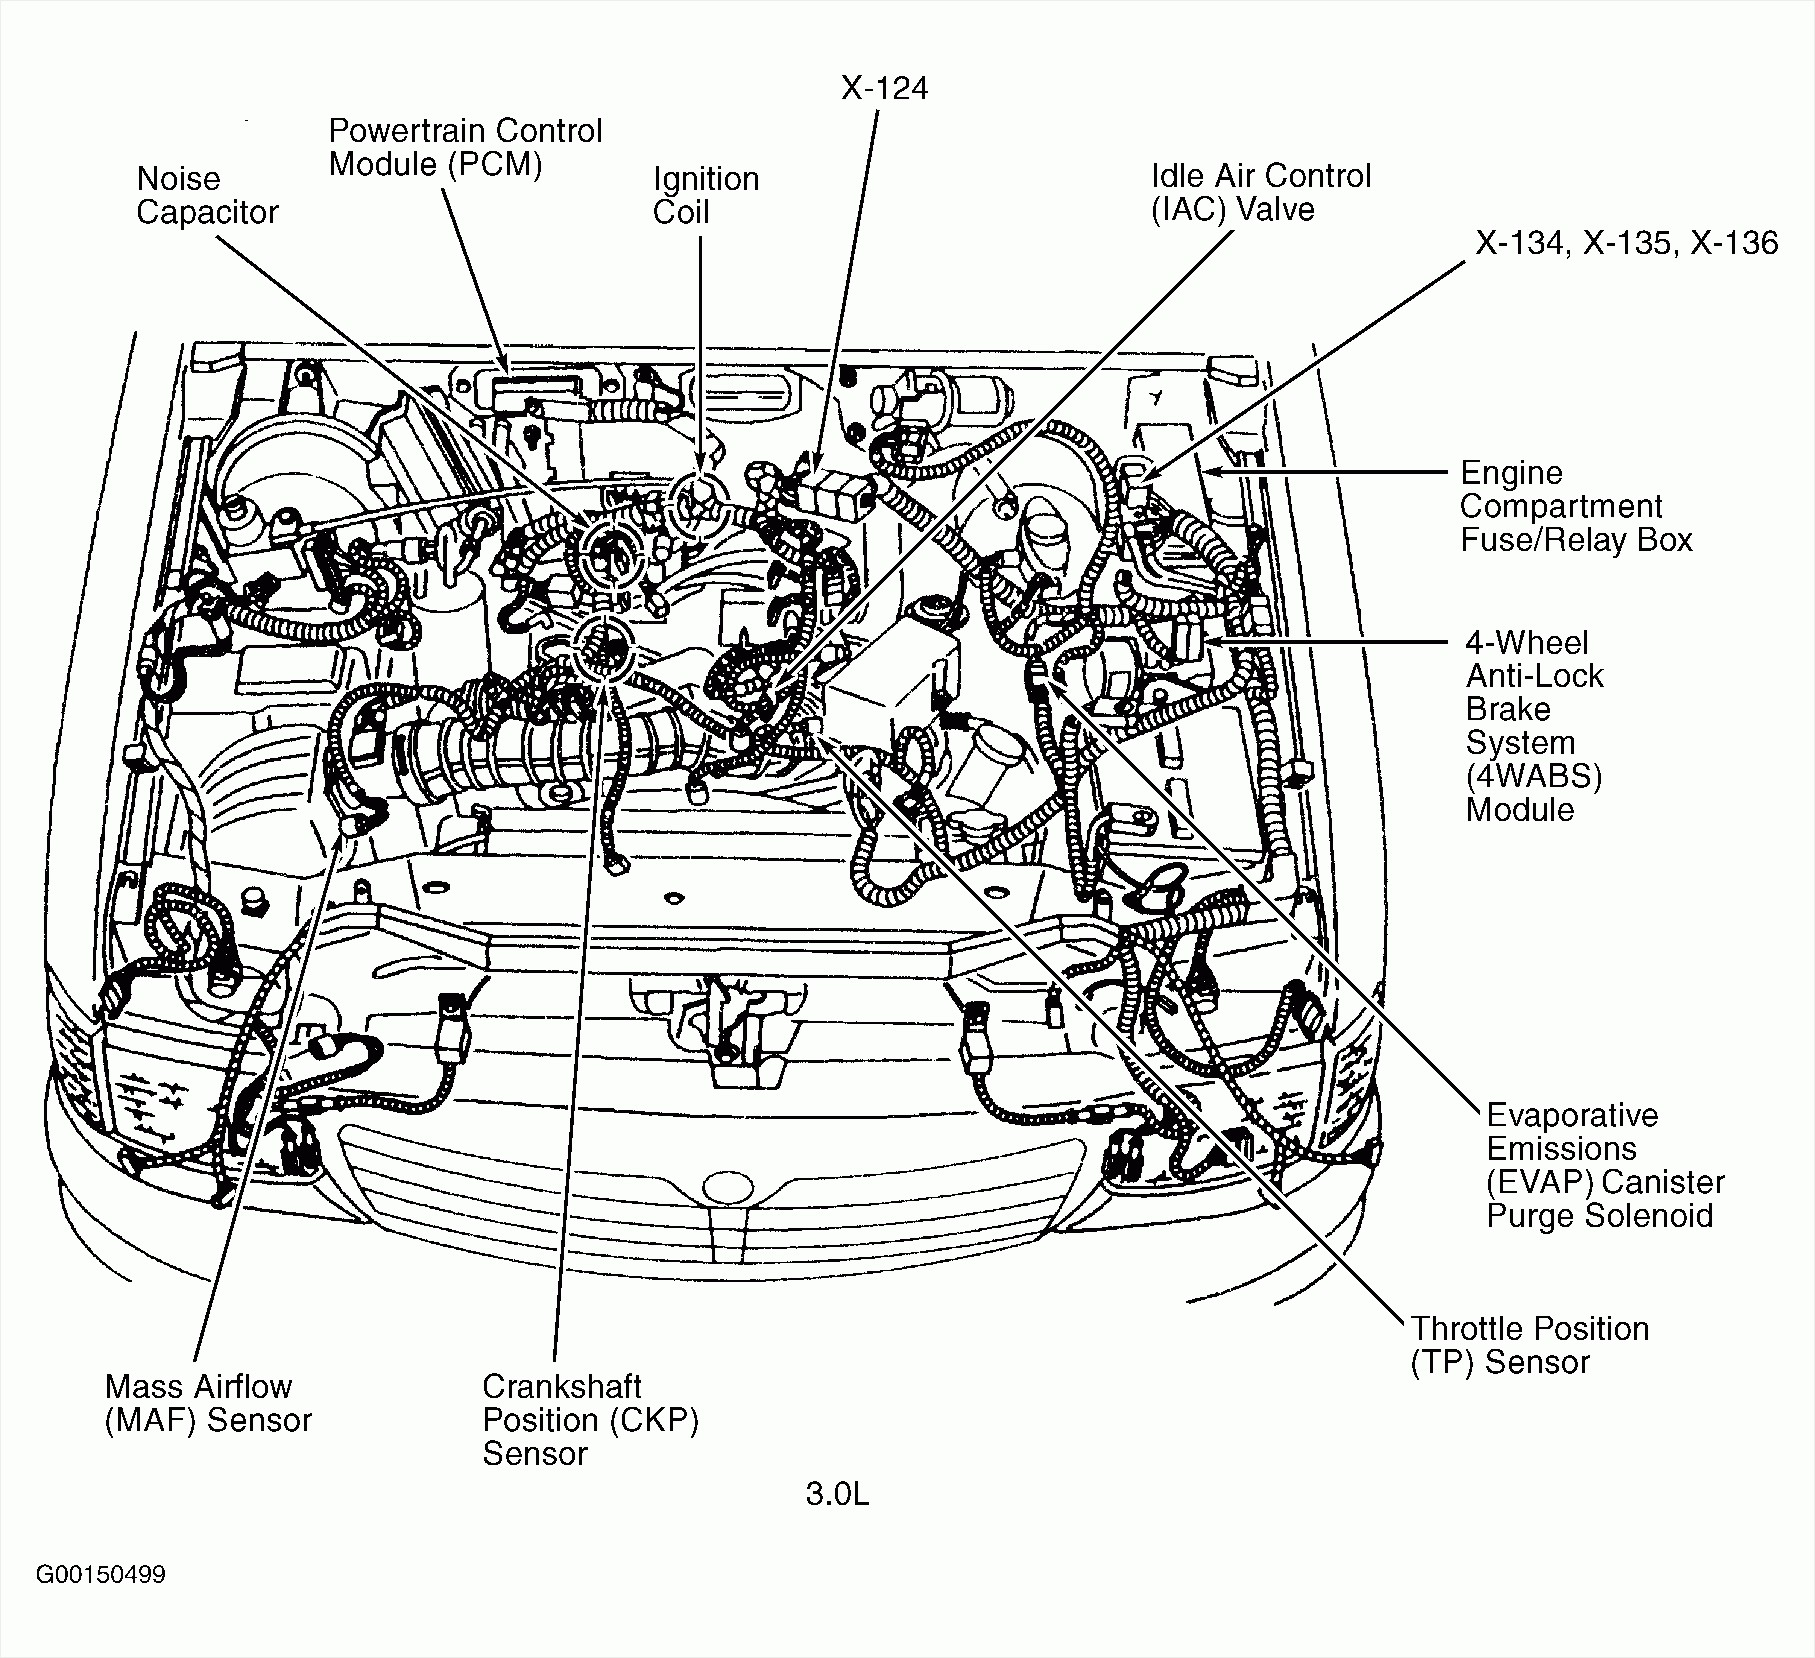 2010 ford ranger engine diagram best wiring library 2009 Ford Escape TPMS Schematic Diagram 2008 ford escape parts diagram 1987 ford ranger wiring diagram also rh detoxicrecenze com 2010 ford